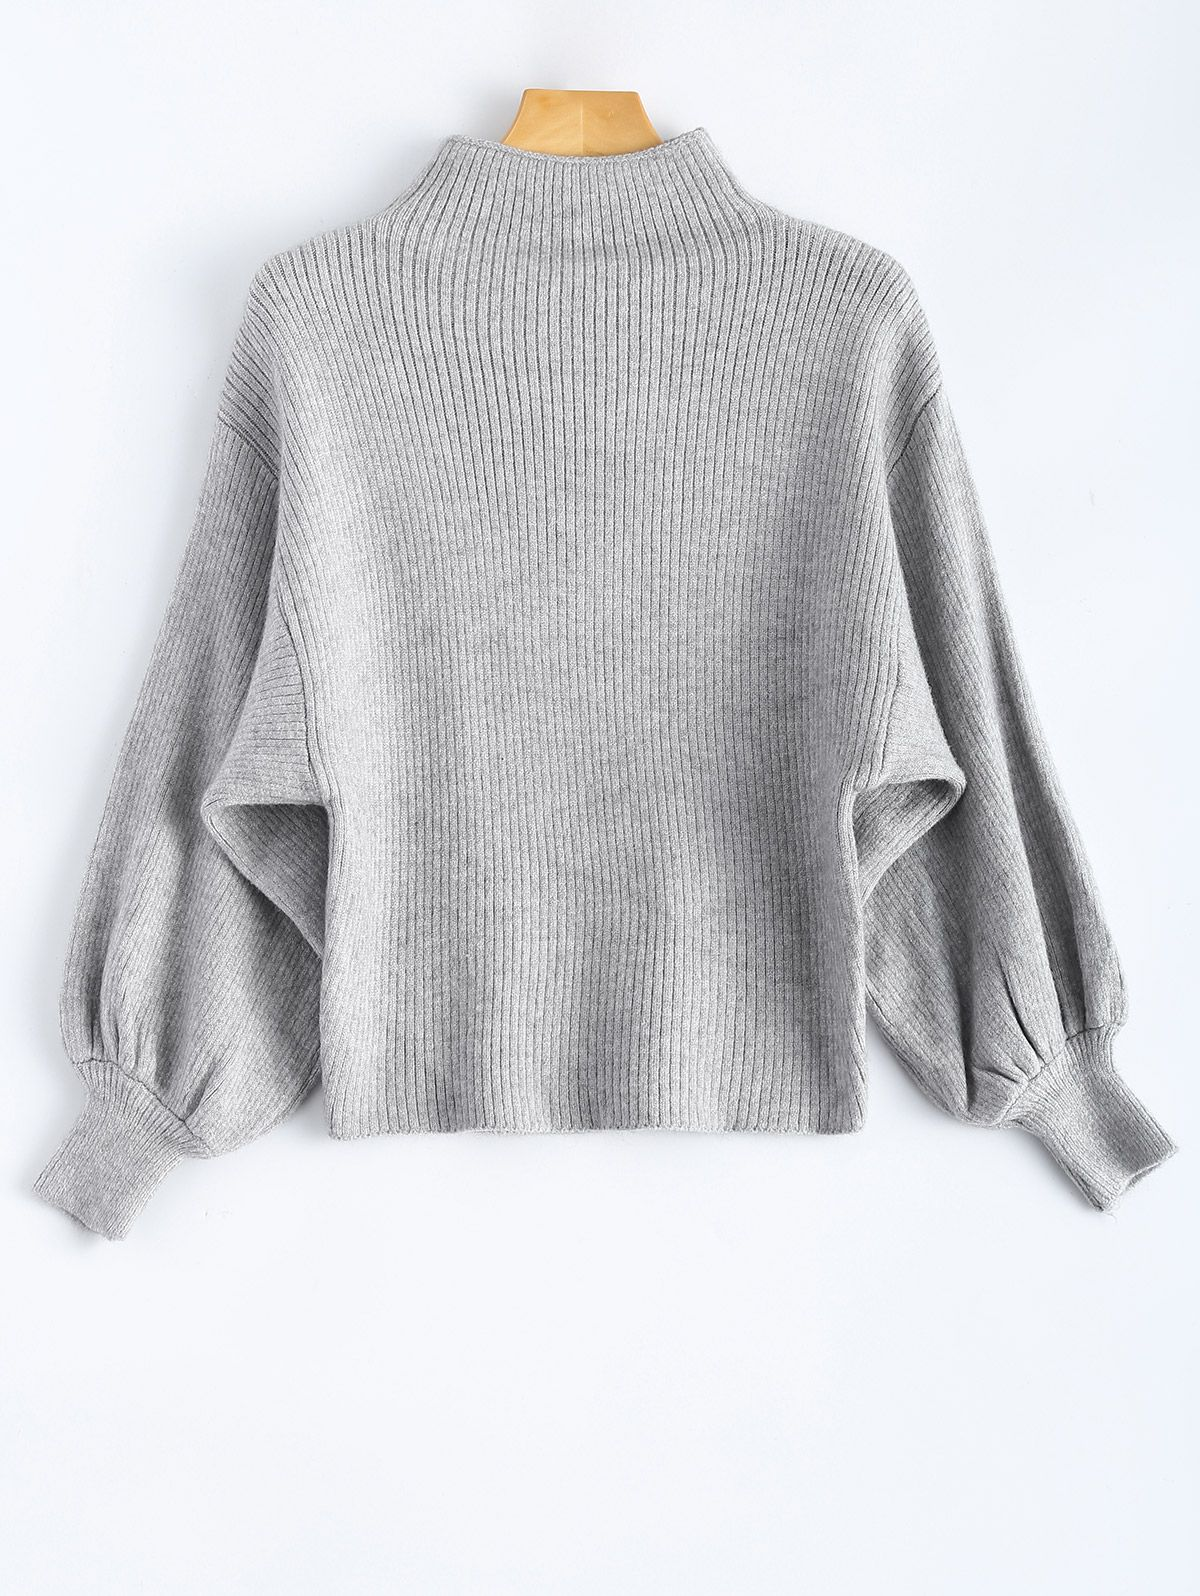 cc03a5ed2788bd Puff Sleeve Mock Neck Sweater | SWEATERS & CARDIGANS | Sweaters ...